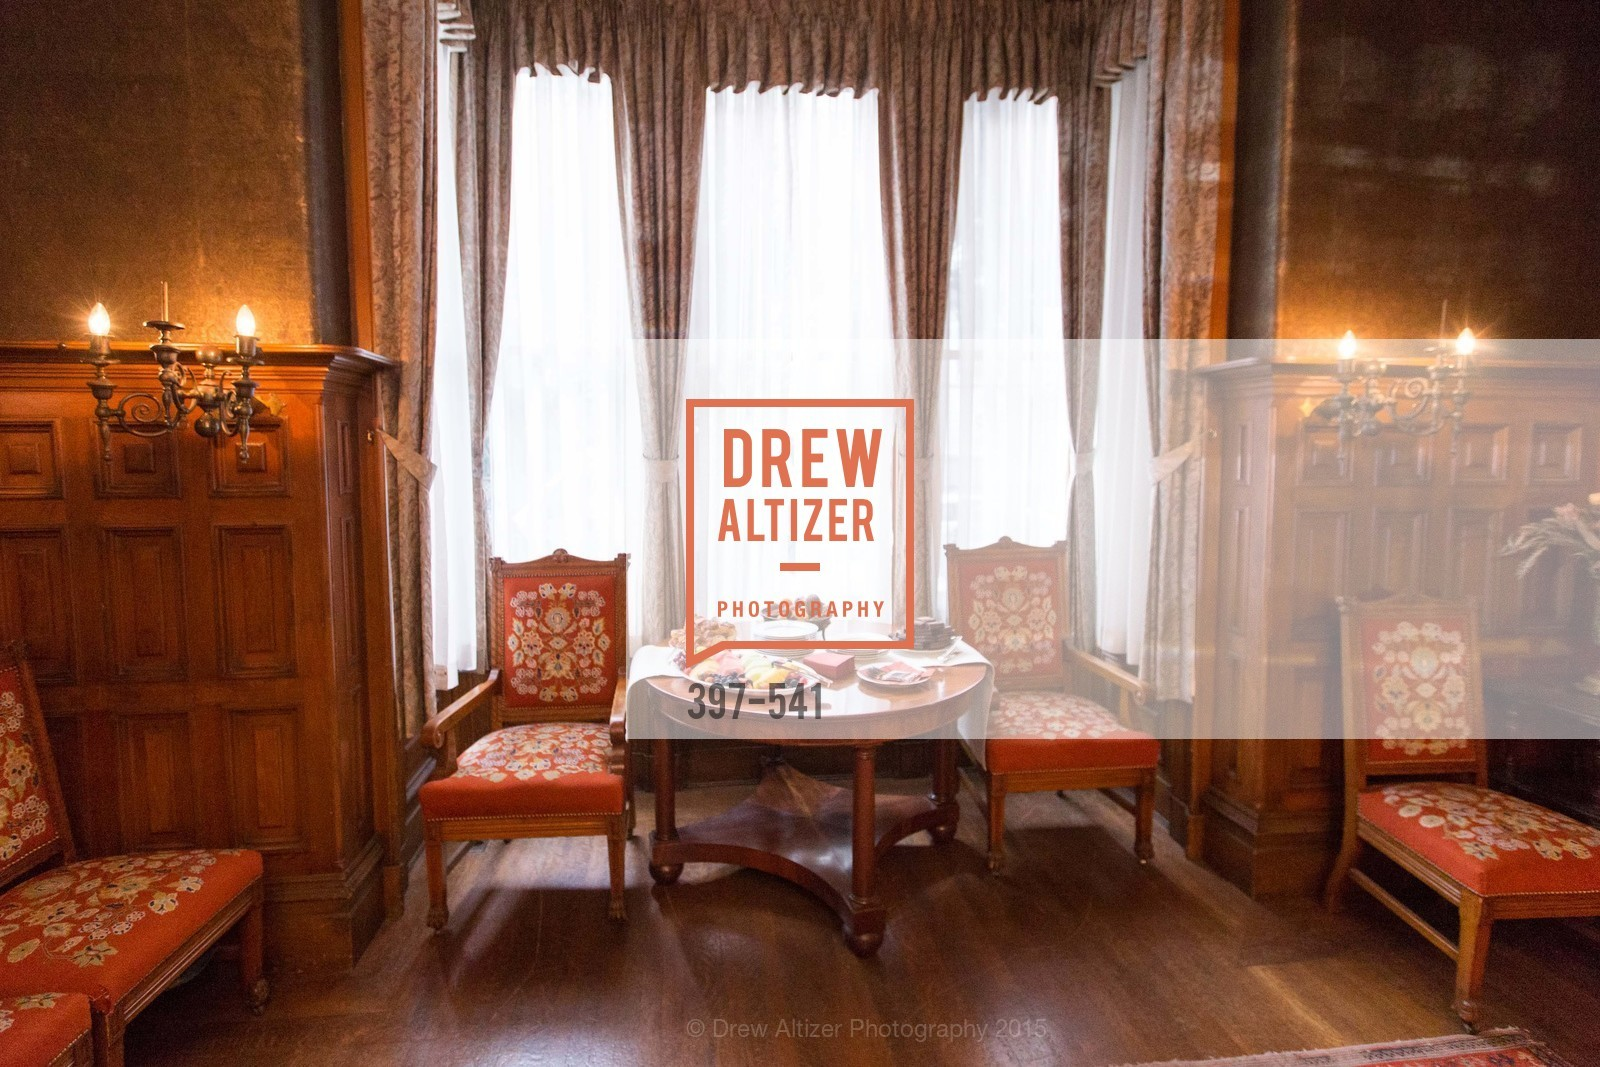 Atmosphere, Ceremony Inaugurating the Campaign for San Francisco Heritage & Haas-Lilienthal House, Haas-Lilienthal House. 2007 Franklin Street, November 18th, 2015,Drew Altizer, Drew Altizer Photography, full-service agency, private events, San Francisco photographer, photographer california